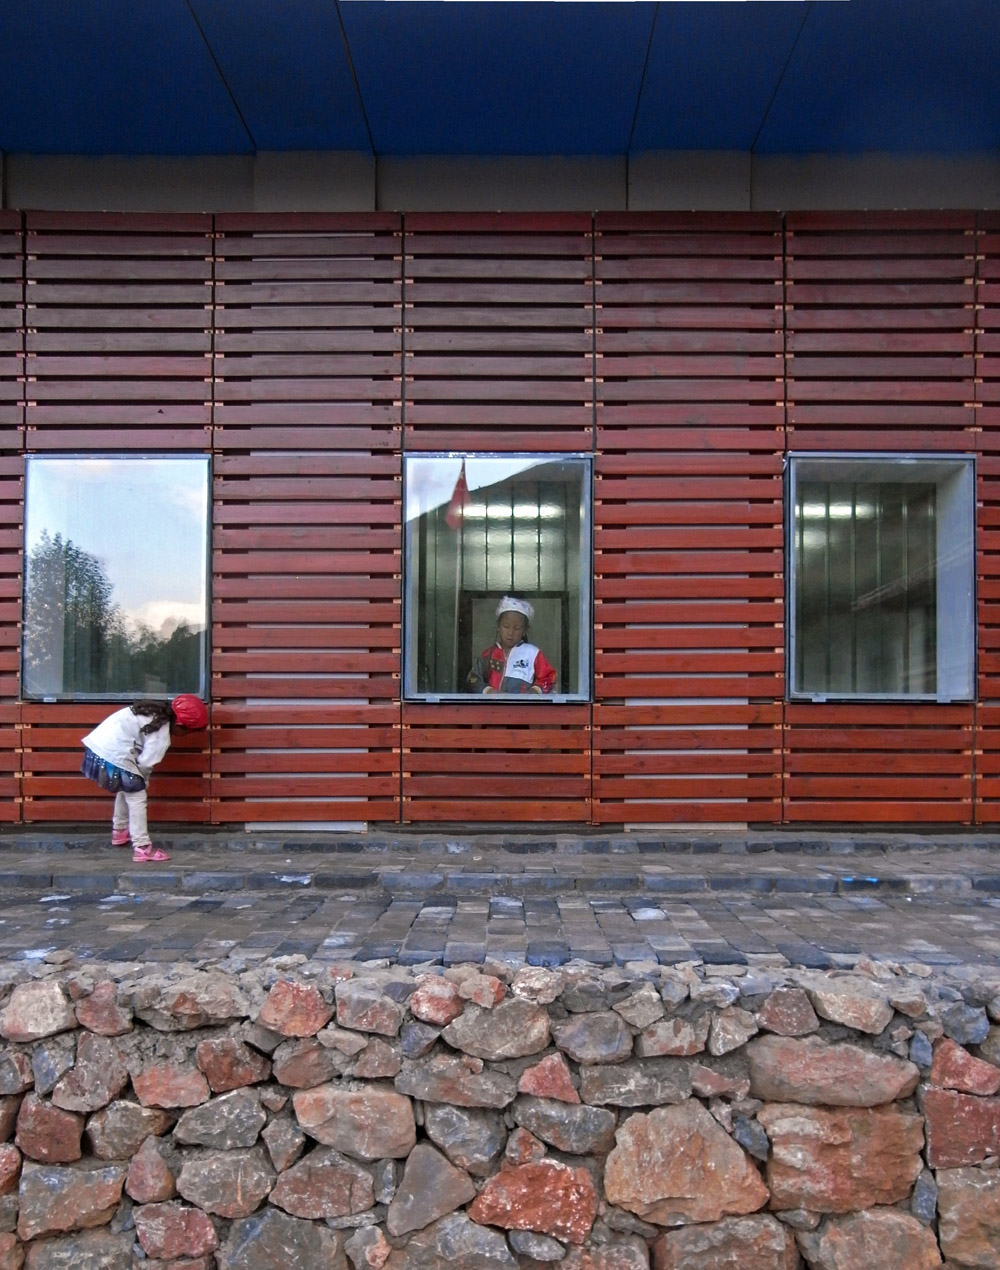 With a simple timber-trellis cladding design, this modern building blends in with the rural ambiance of the village